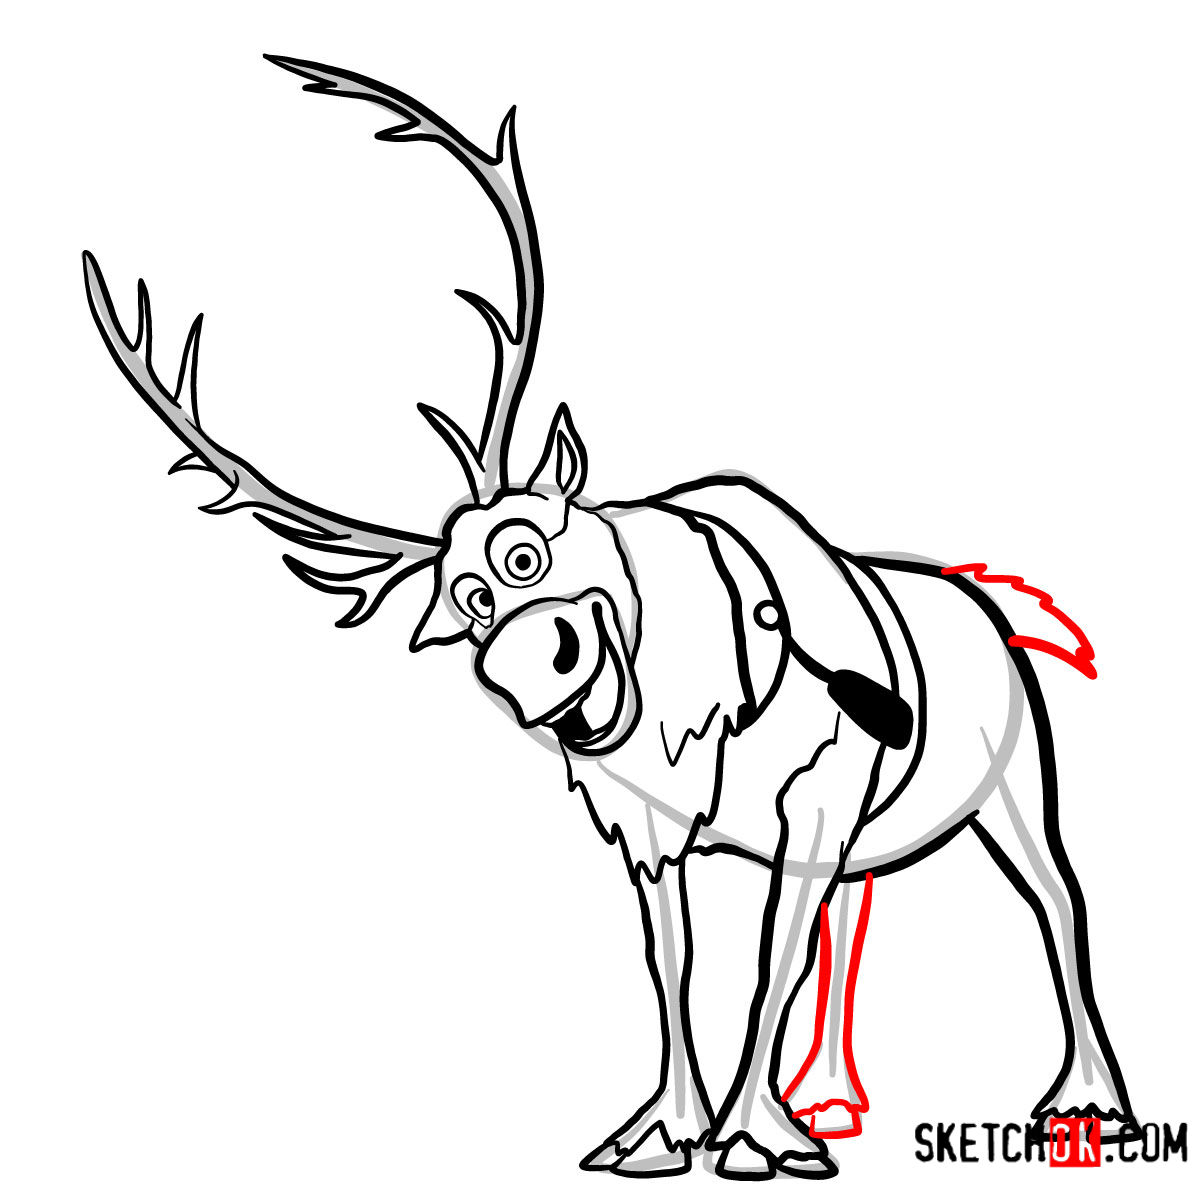 How to draw Sven (Kristoff's deer) | Fro - Step by step ...